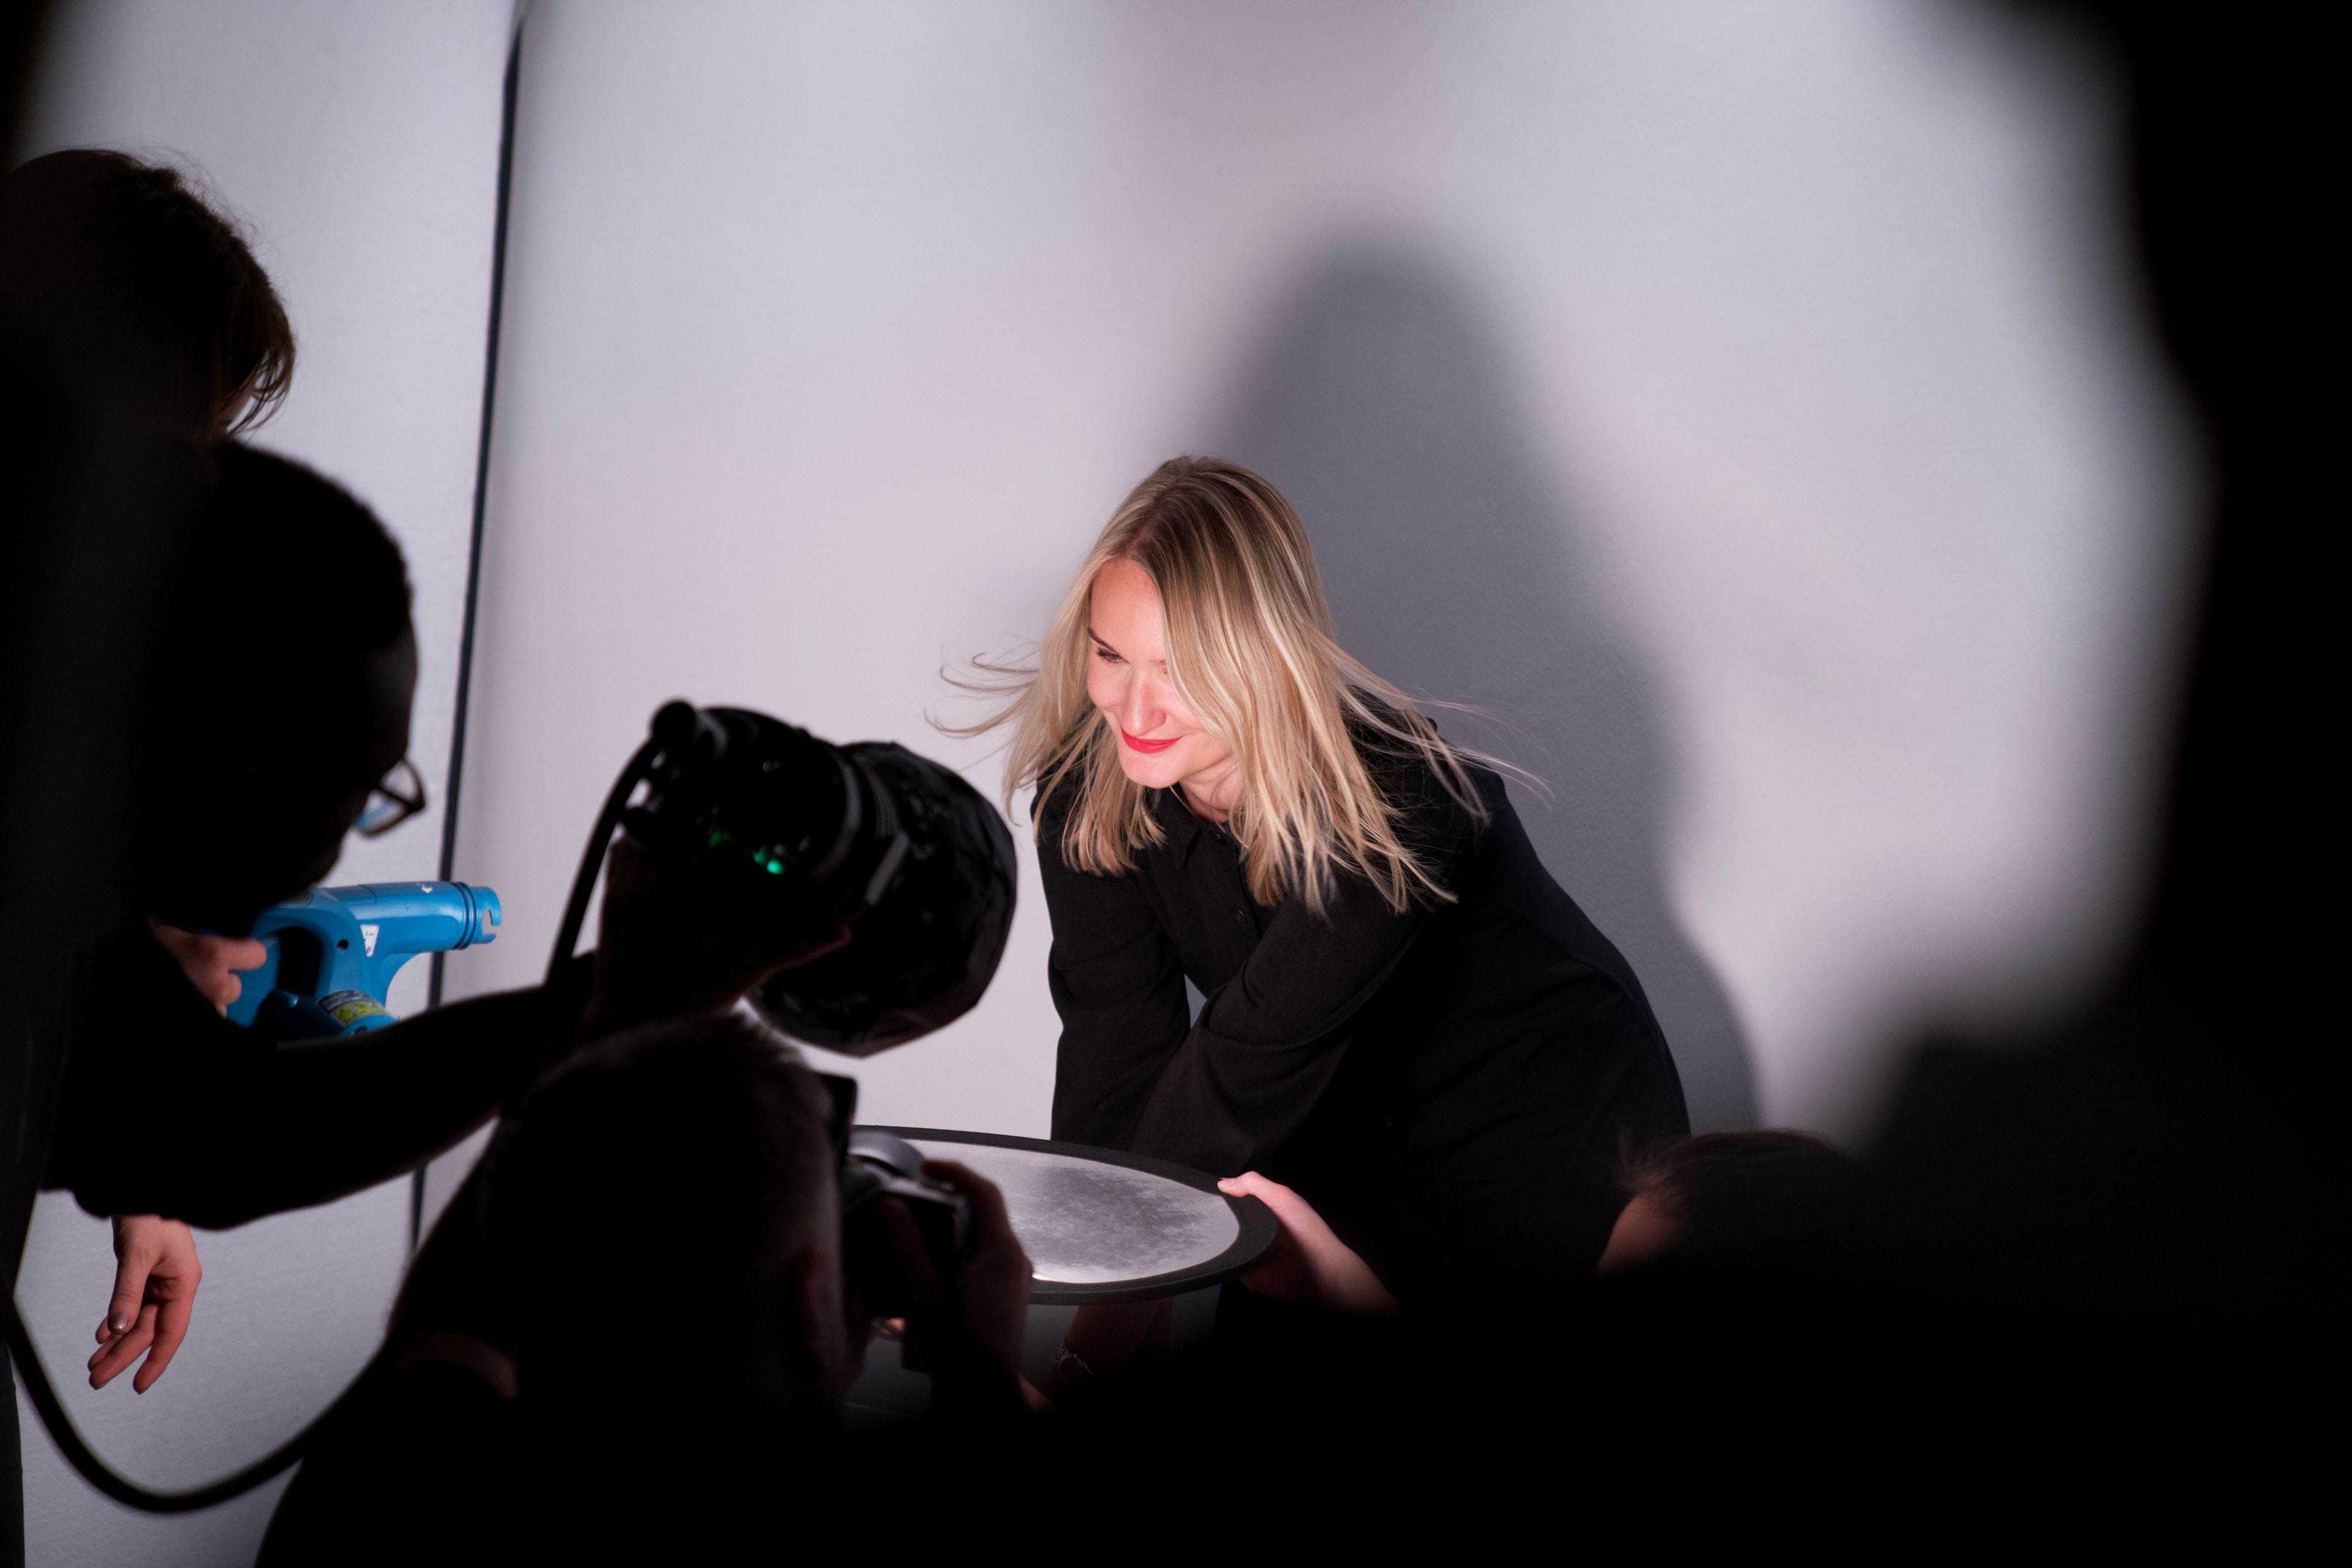 Woman being photographed against a white backdrop